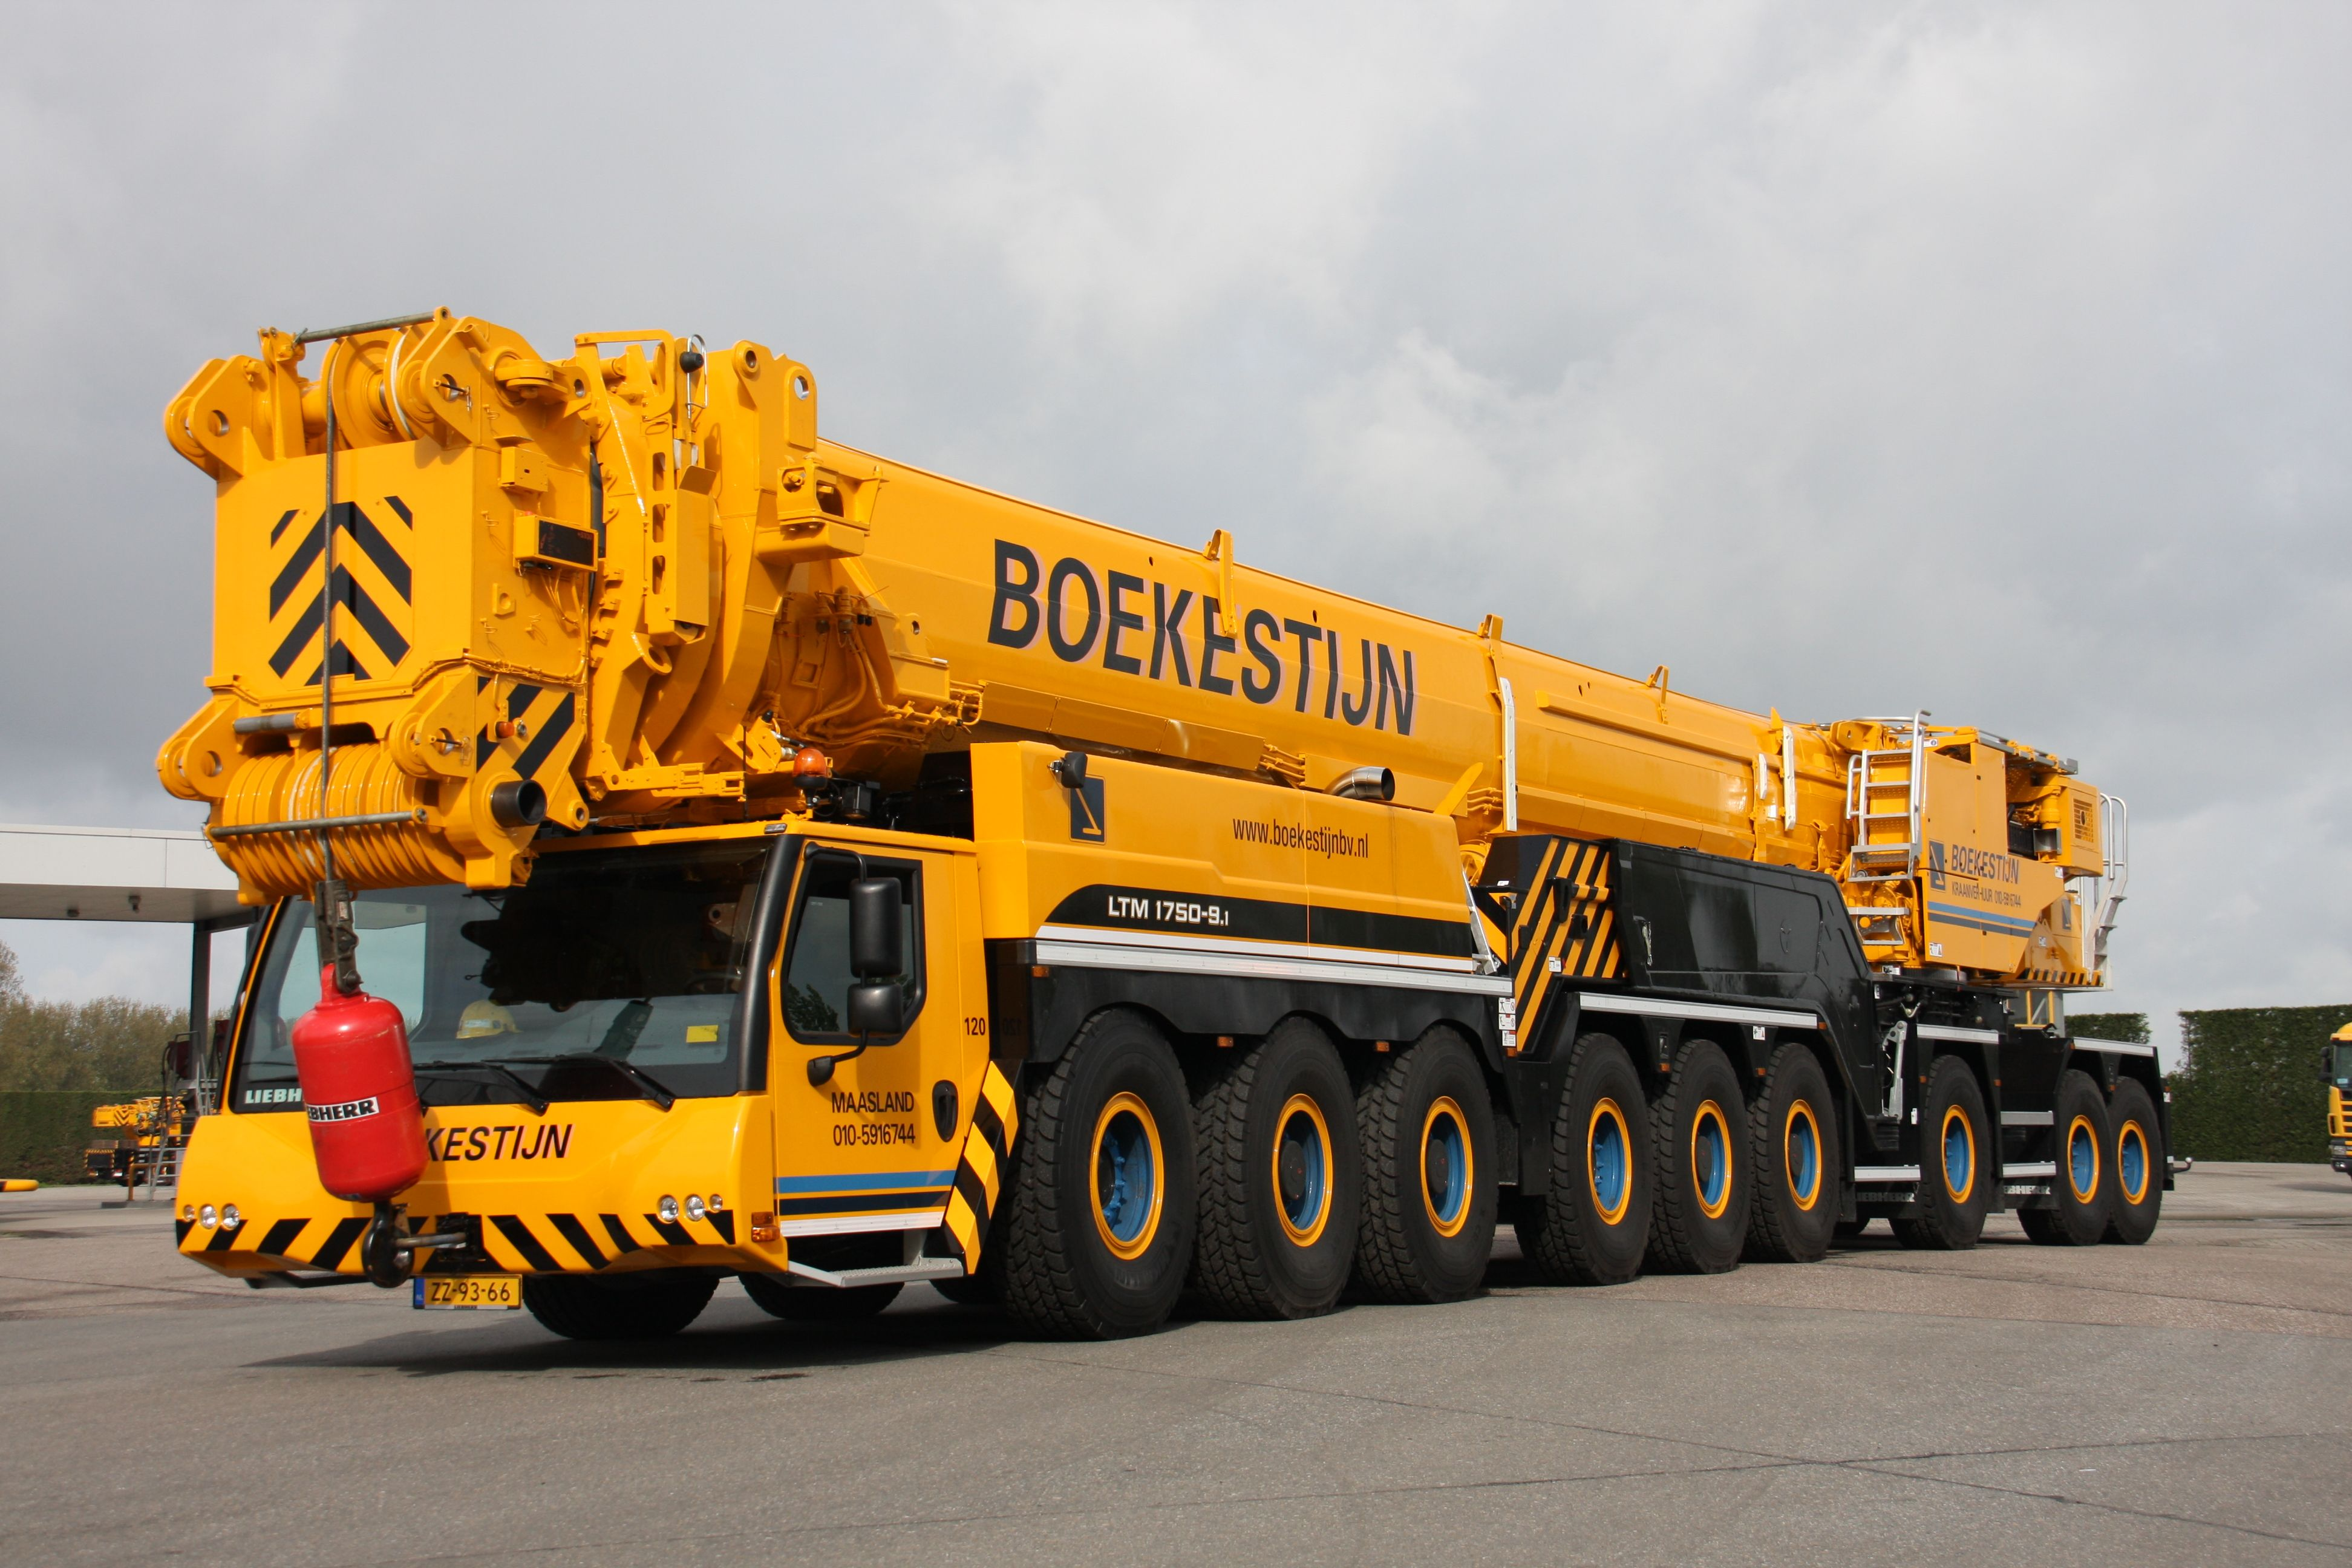 Pin By Chris Engelbrecht On Cranes And Overhead Heavy